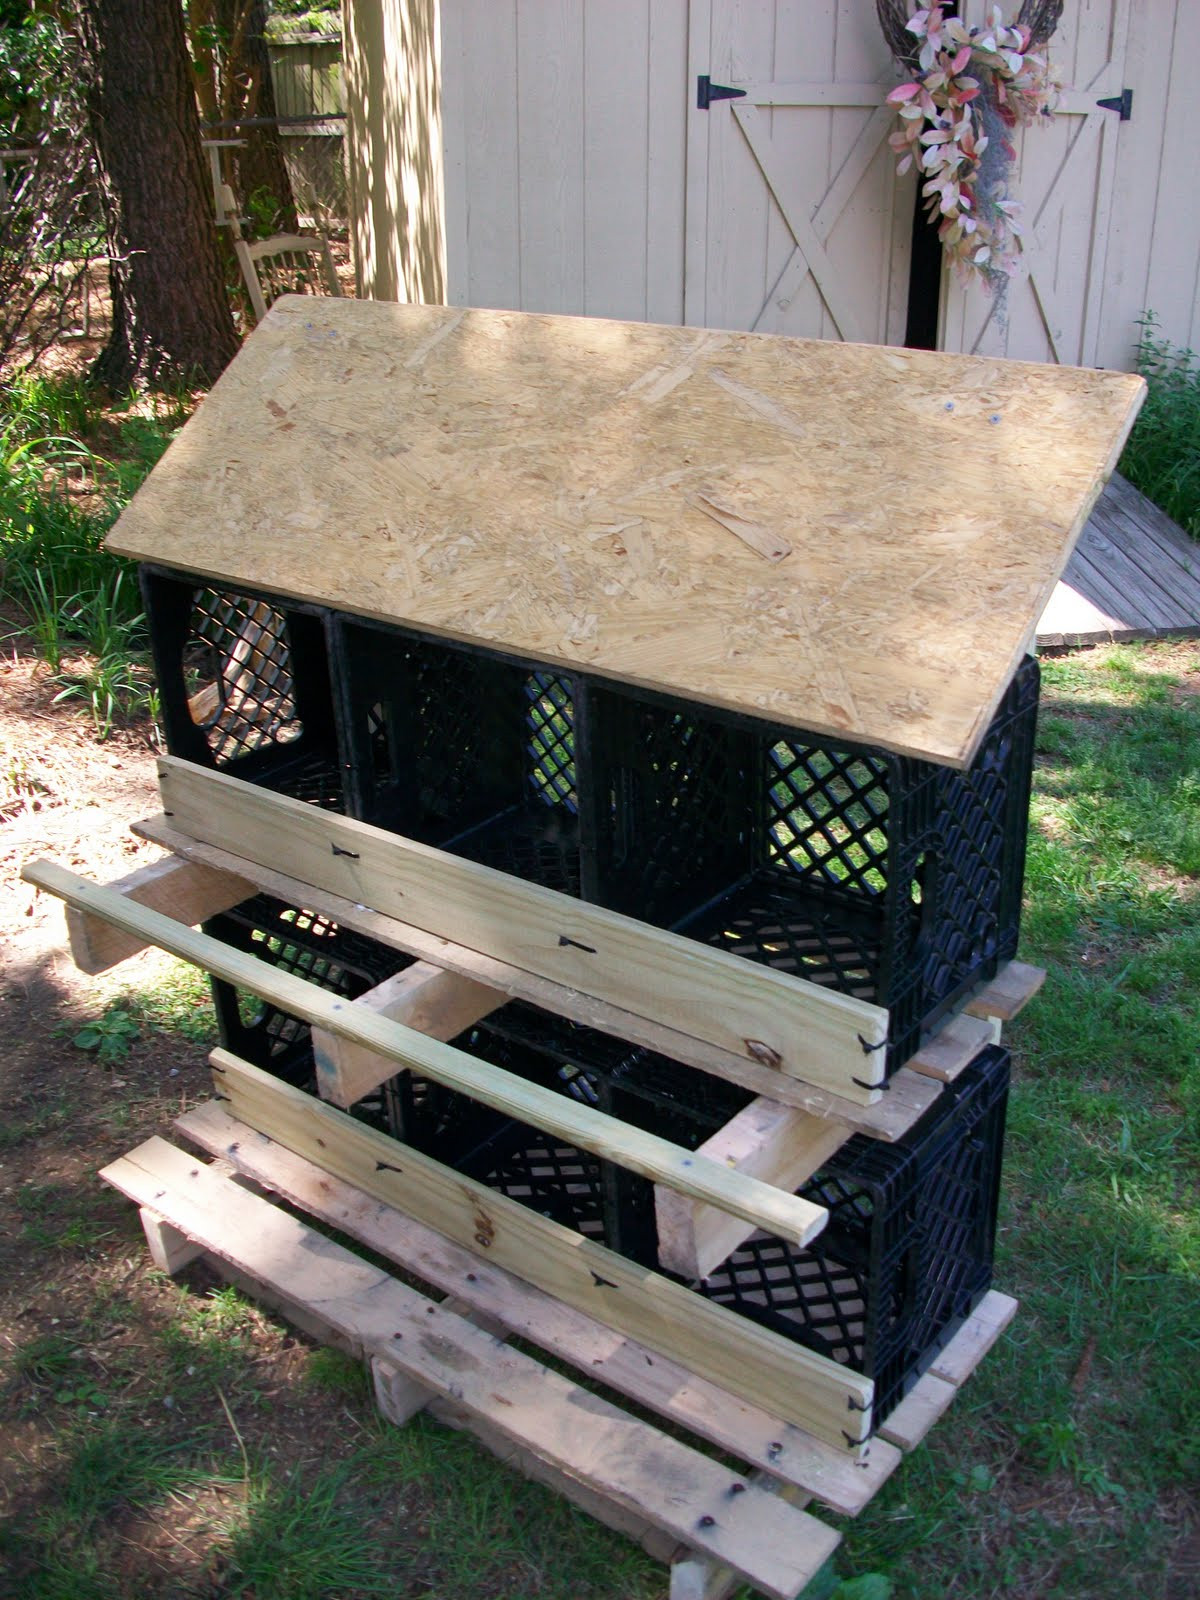 Best ideas about DIY Nesting Box . Save or Pin 20 Easy & Cheap DIY Chicken Nesting Boxes Now.